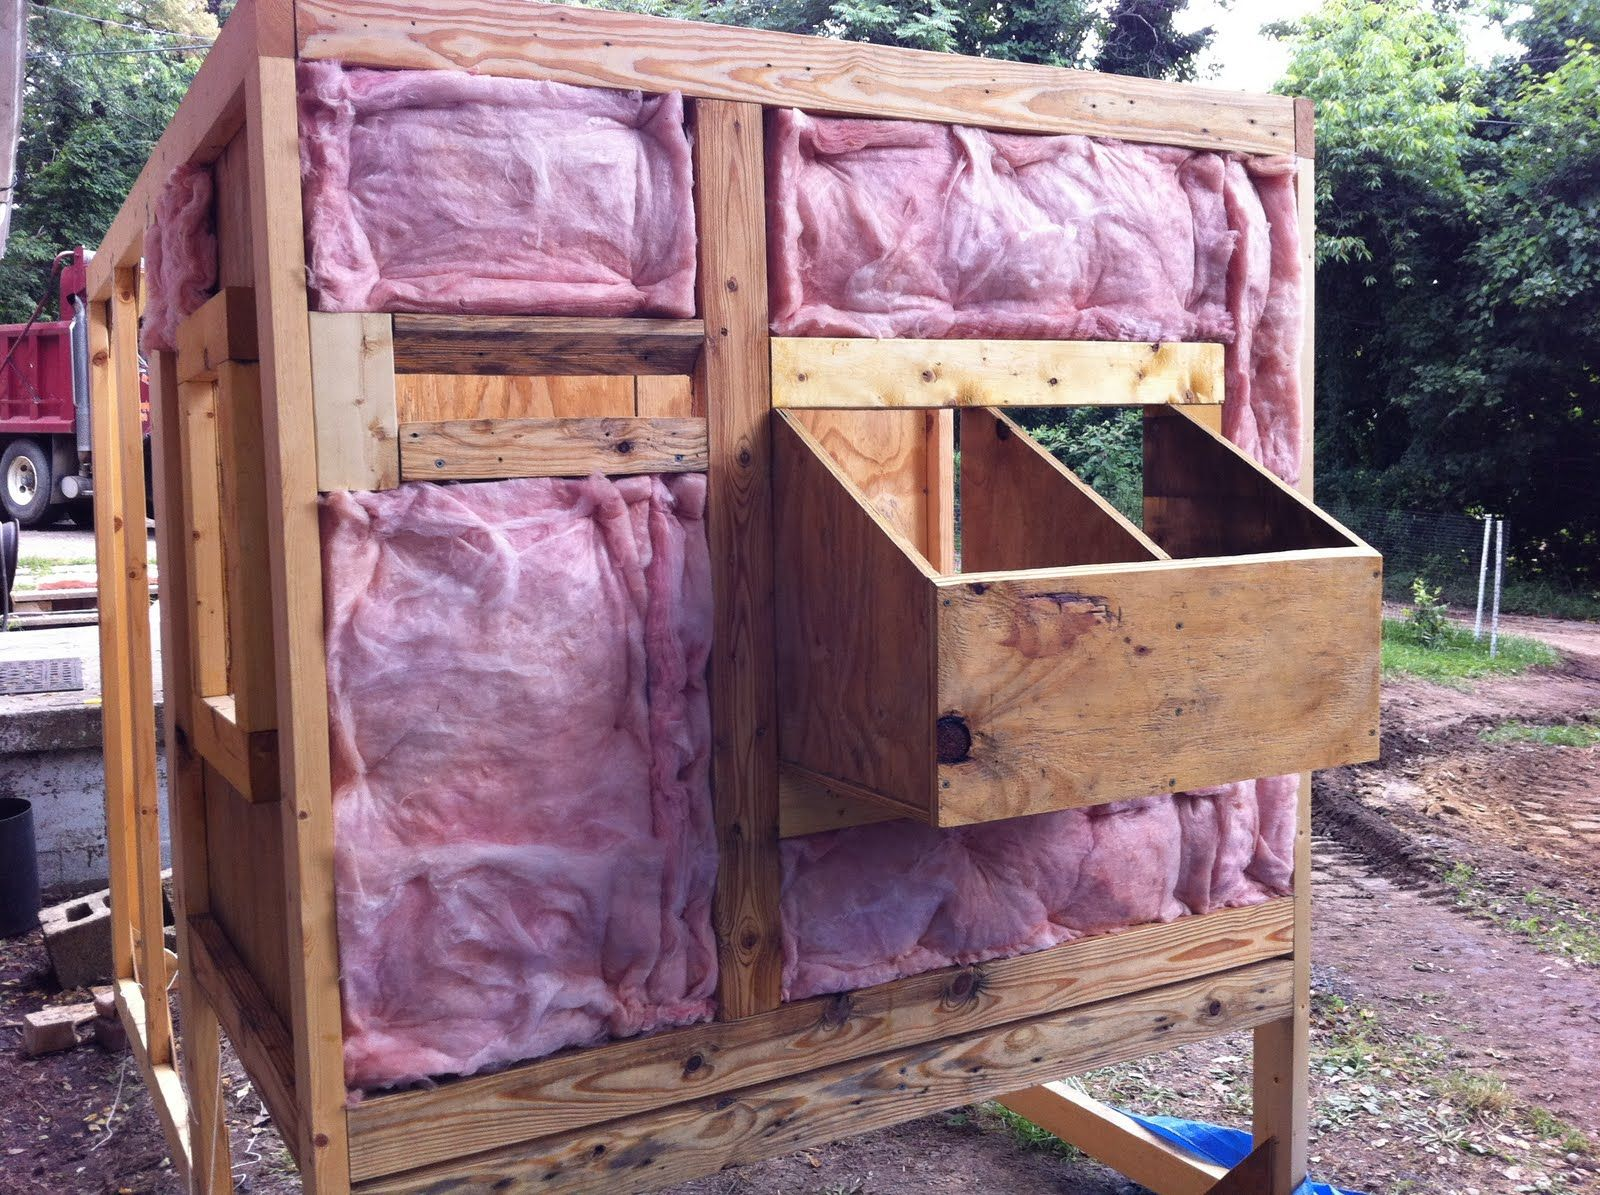 4 ways to insulate chicken koop to make it winter or cold hardy